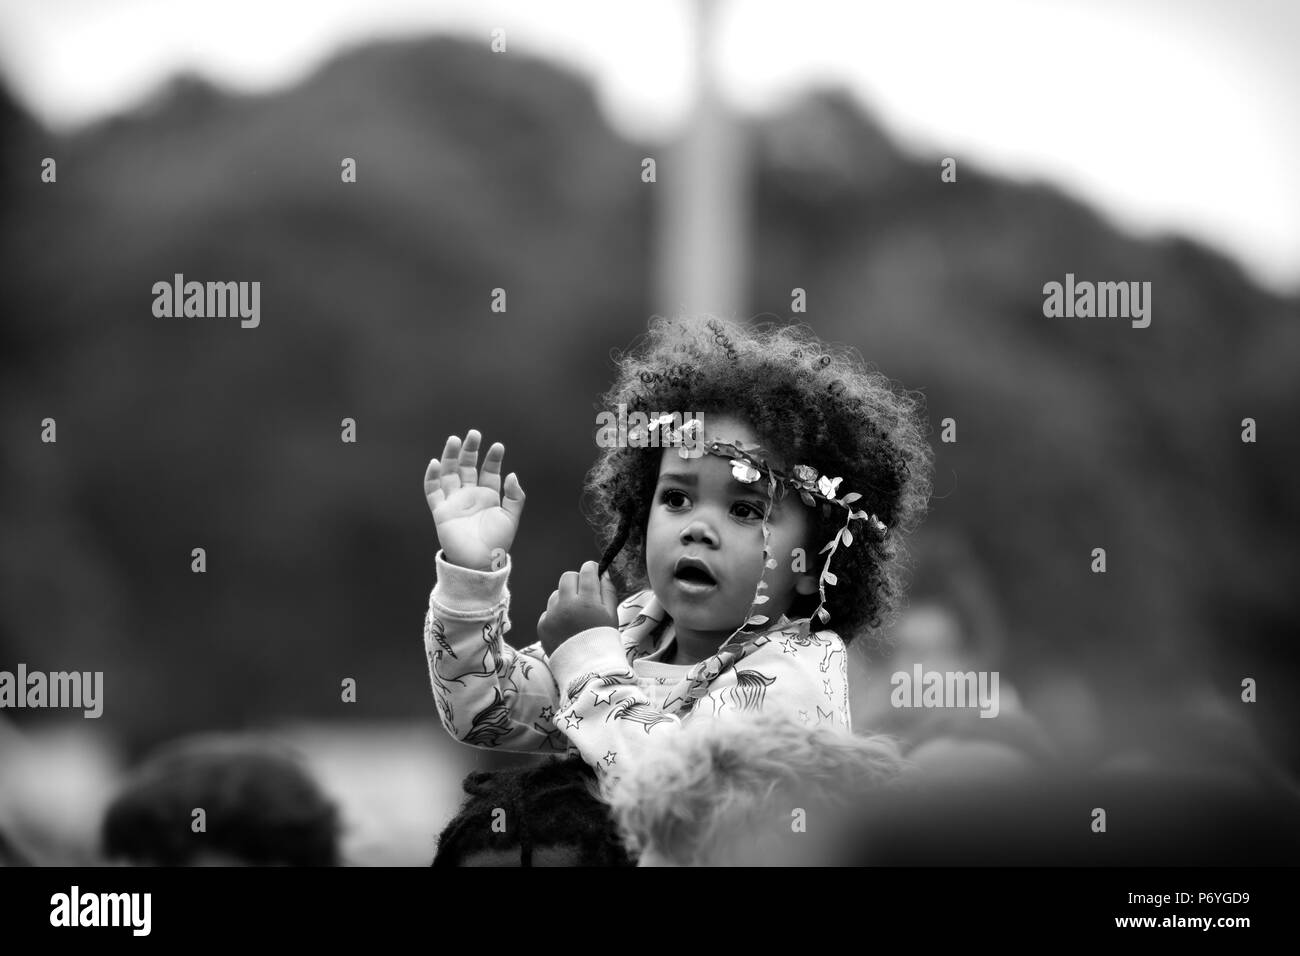 Monochrome image of a beautiful mixed race baby girl sitting on an adult's shoulders at the 2018 Africa Oye music festival in Sefton Park, Liverpool. - Stock Image